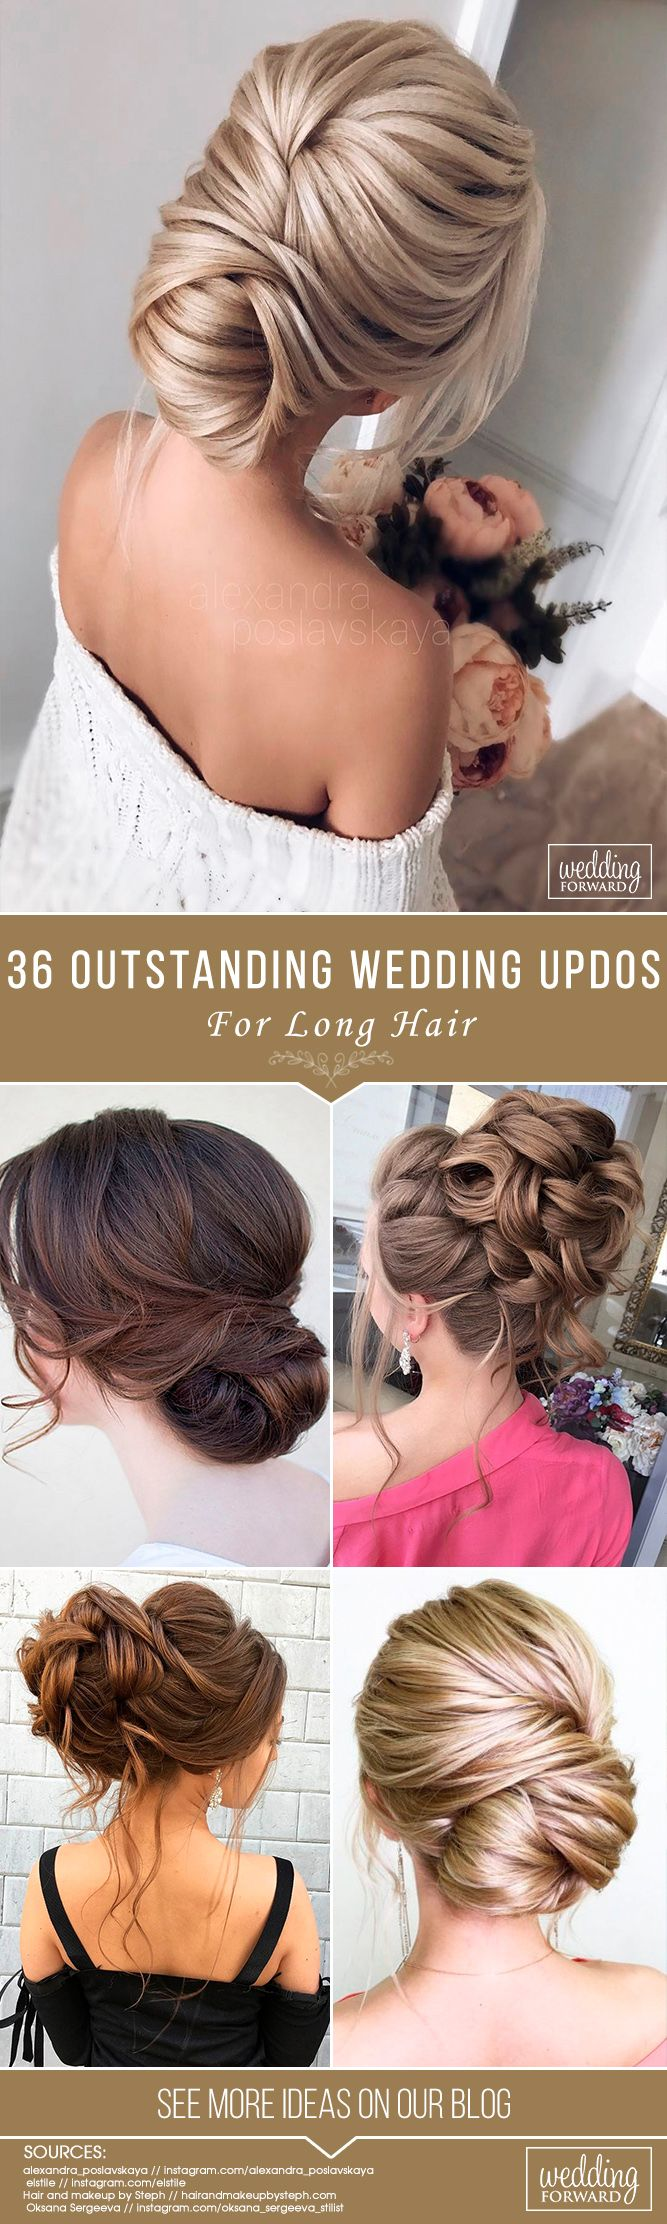 36 Most Outstanding Wedding Updos For Long Hair ❤ We have collected the most o...